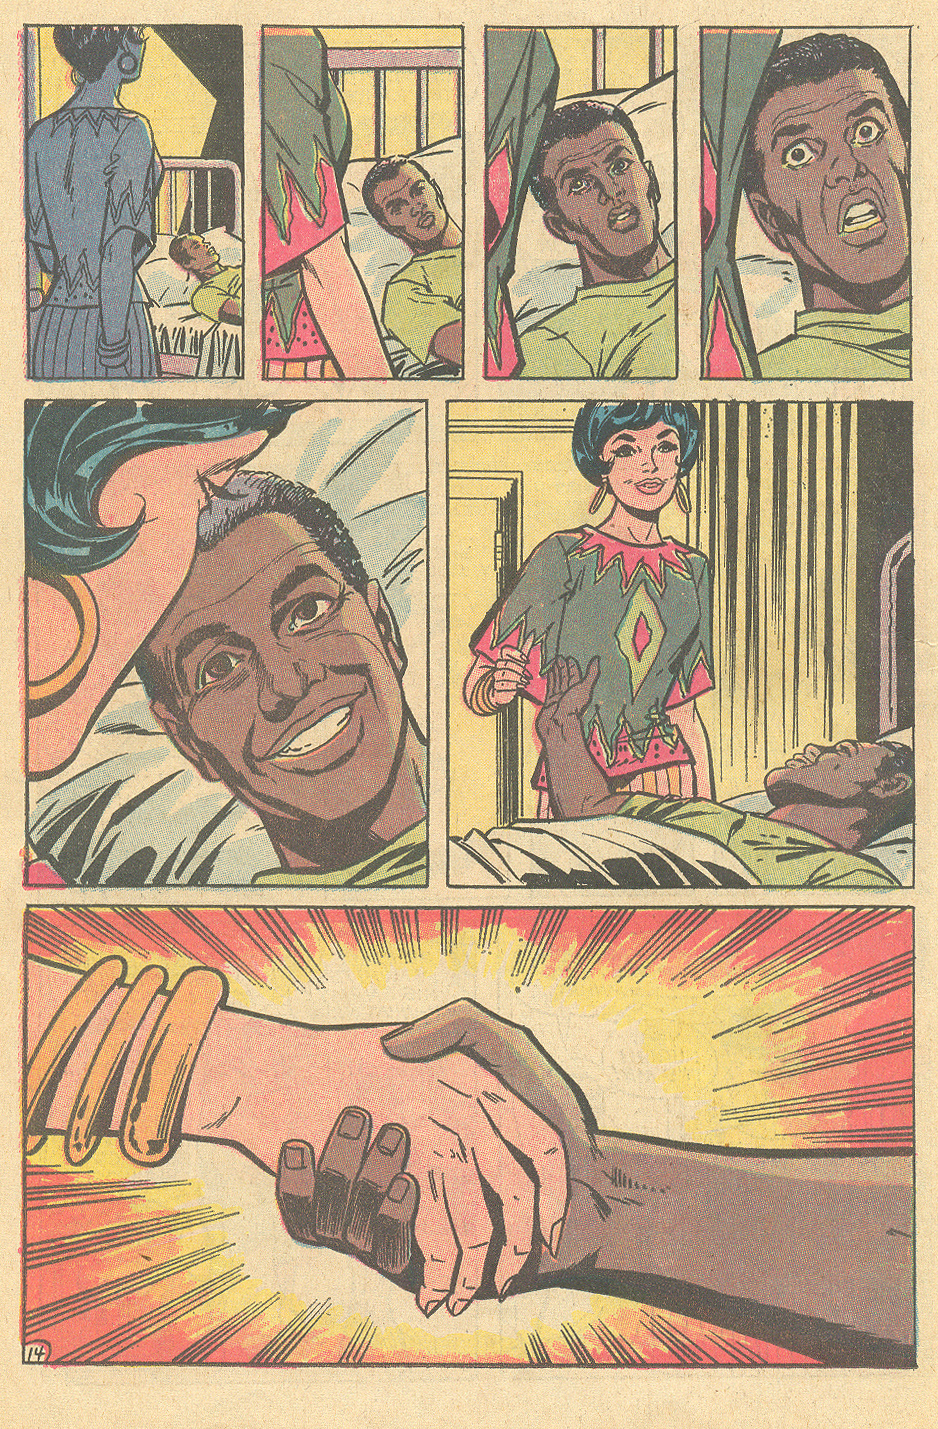 """I Am Curious (Black)!"" Superman's Girl Friend Lois Lane #106 (November 1970). Written by Bob Kanigher, illustrated by Werner Roth and Vince Colletta"